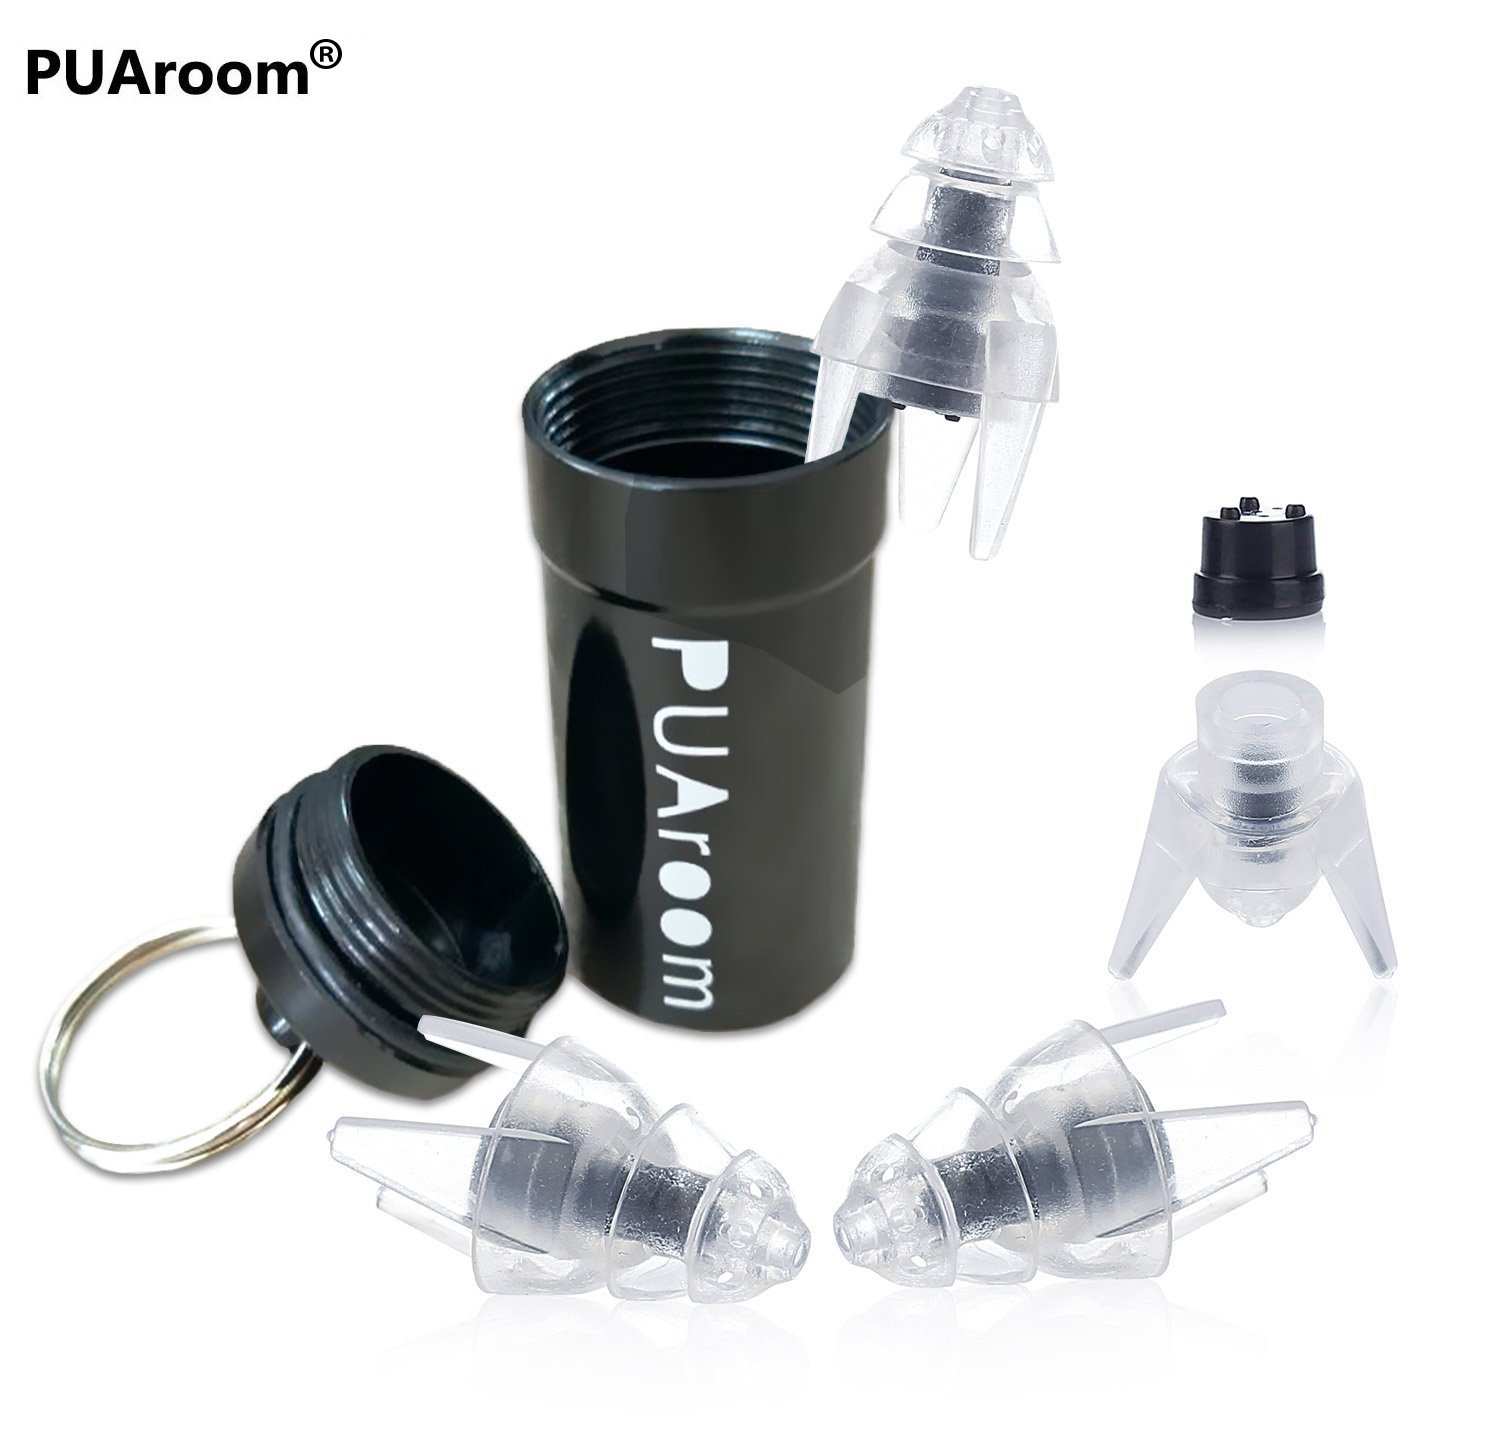 PUAroom SleepingPro Noise Cancelling Sleep Ear Plugs Silicone Reusable Hearing Protection Earplugs for Sleeping,Army,Shooting,Swimming and Flying